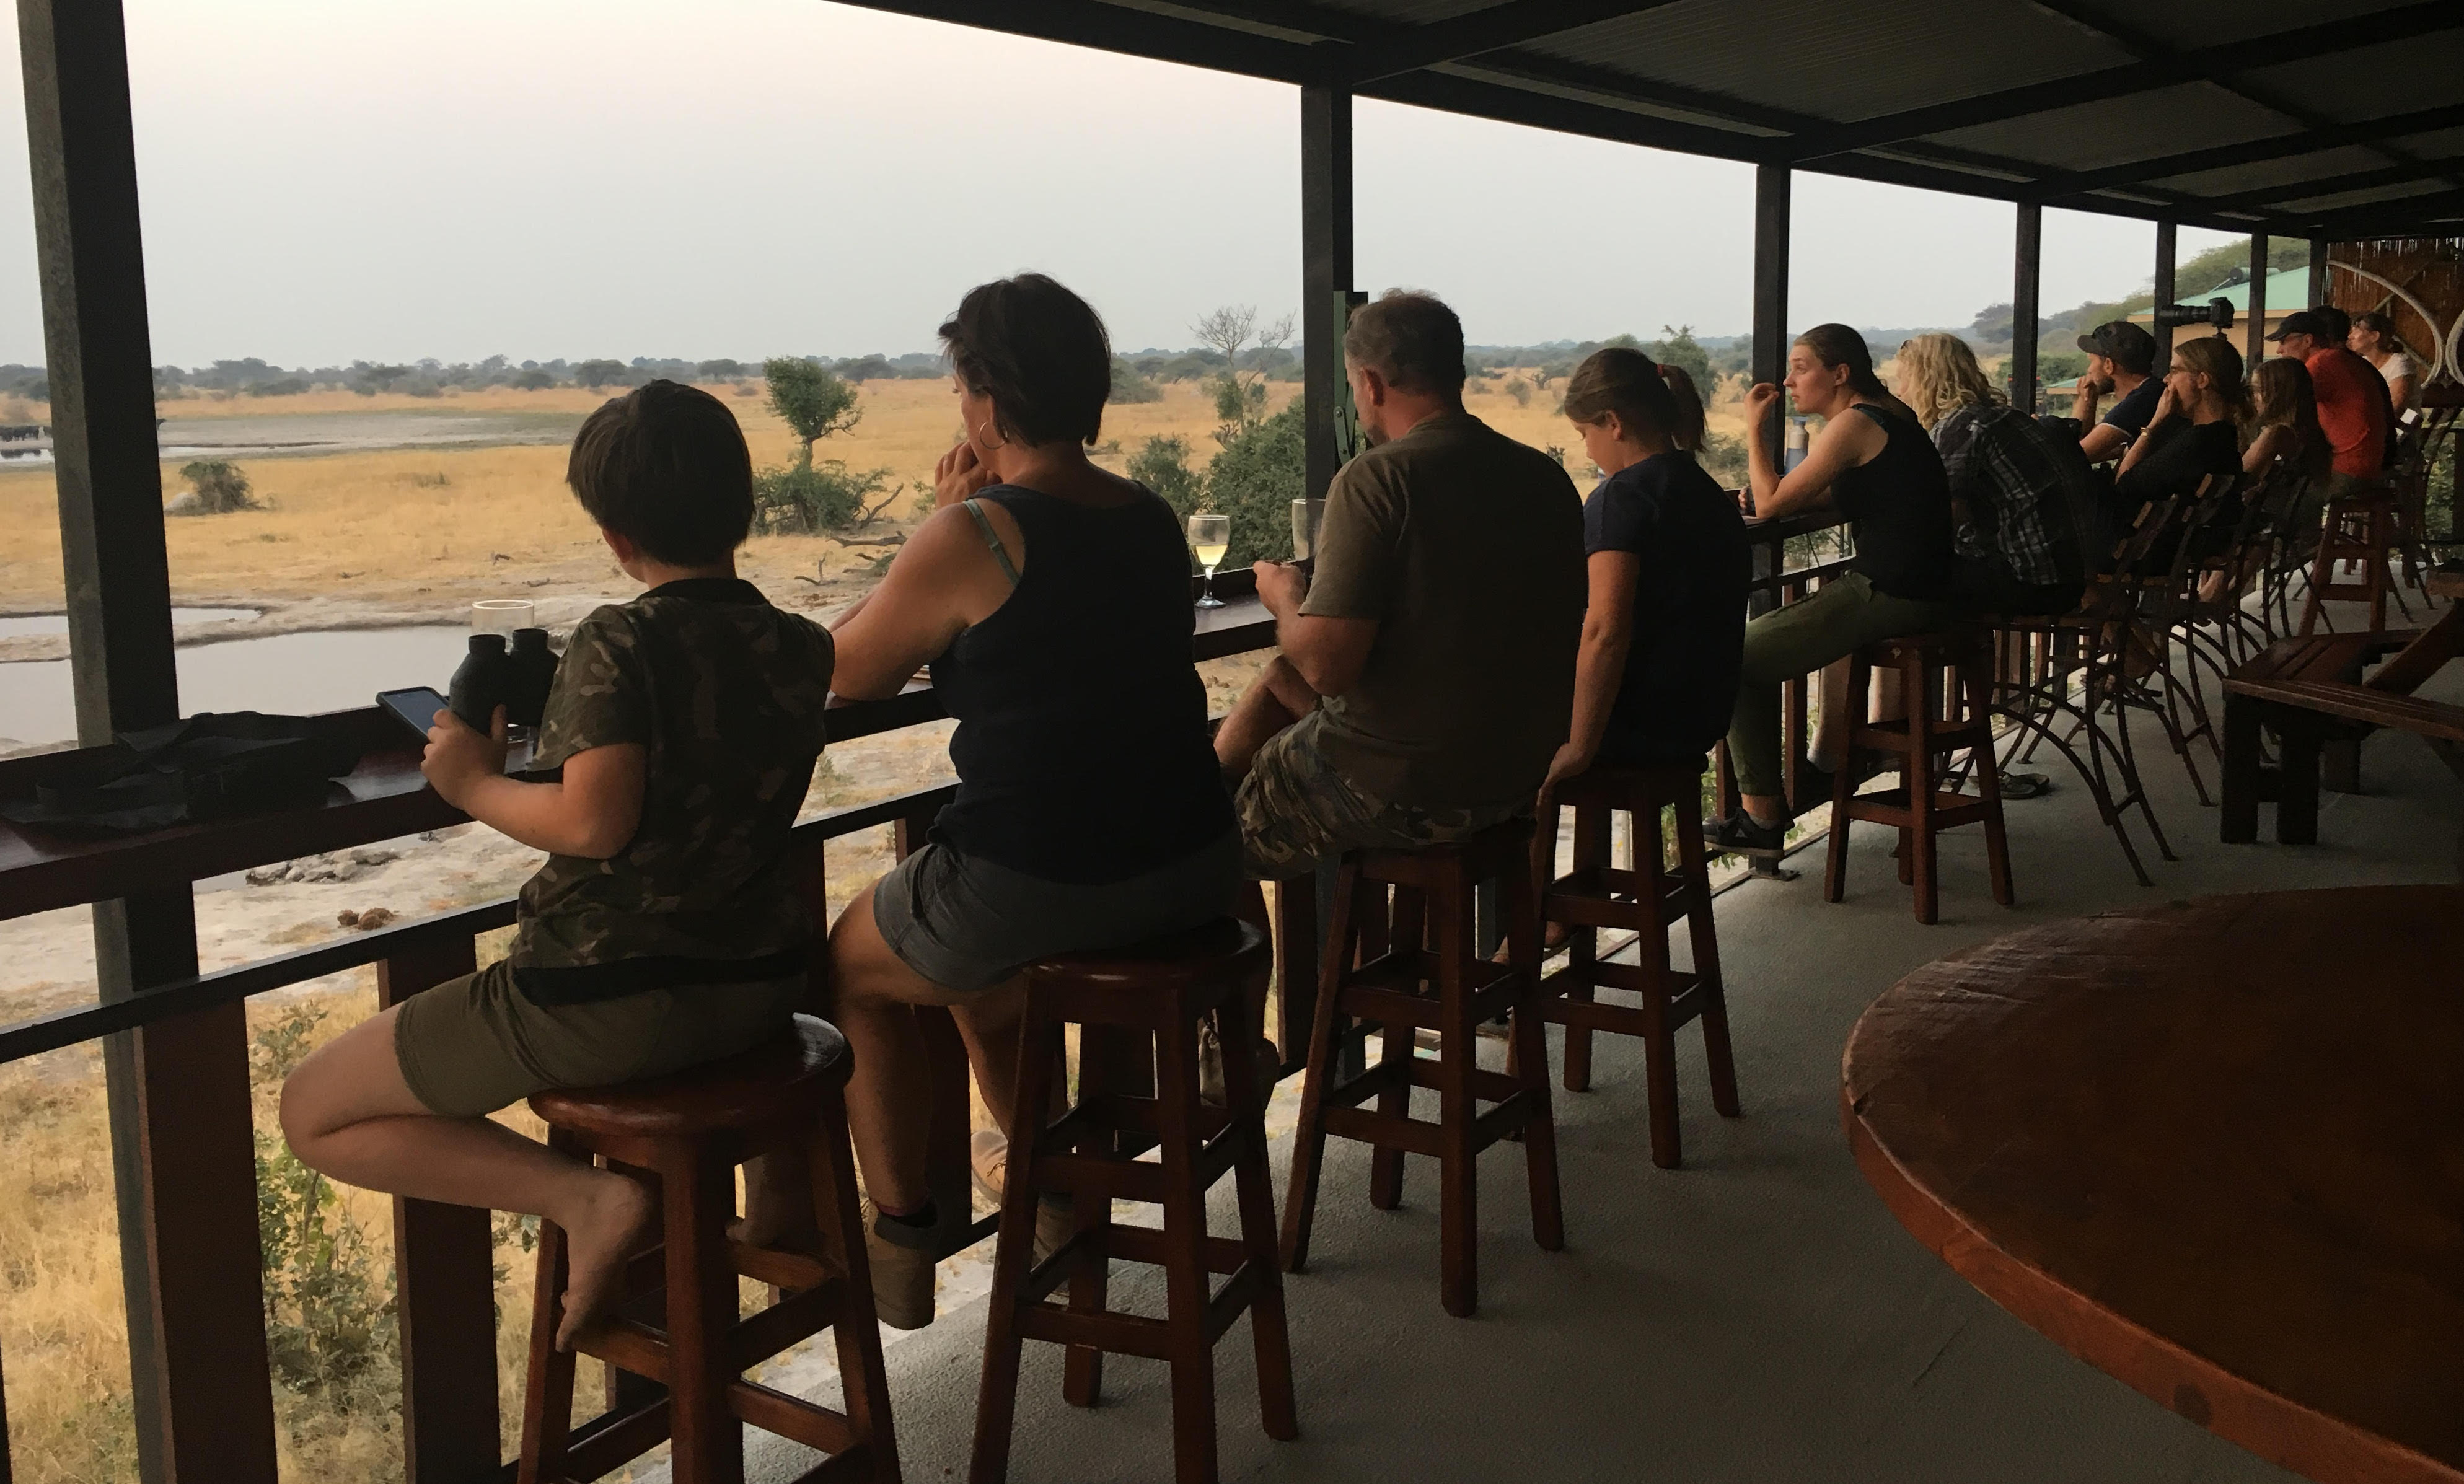 Thobolo's Bush Lodge